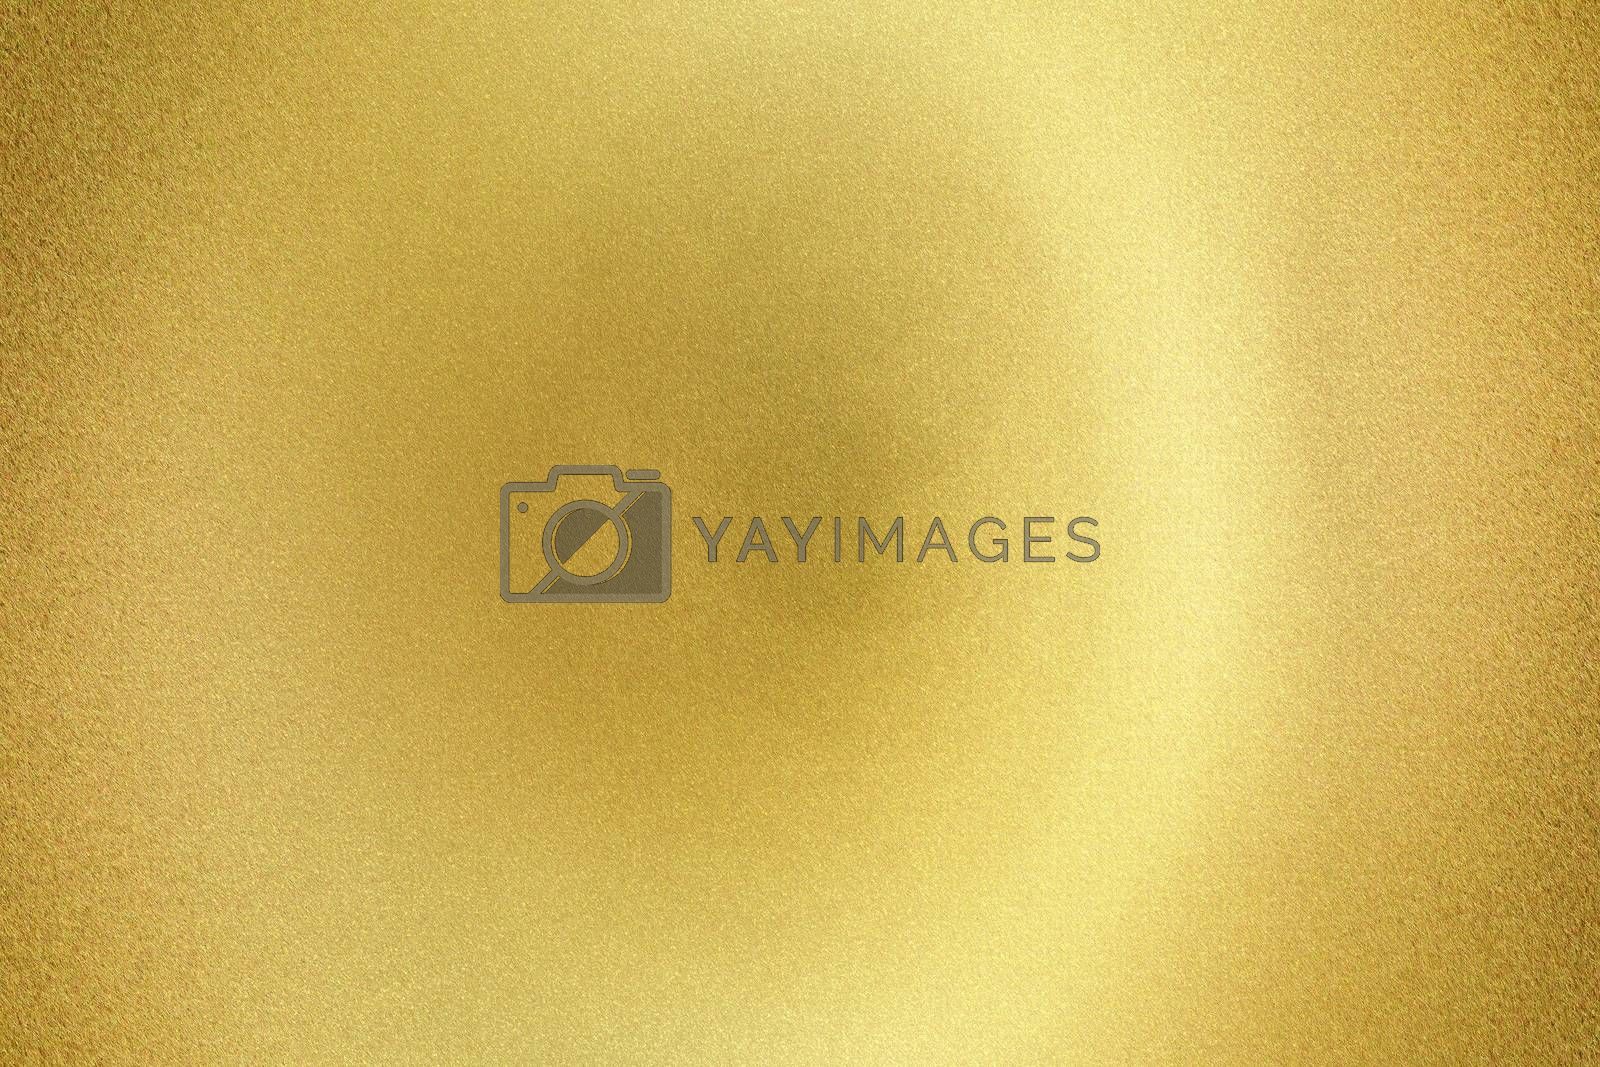 Royalty free image of Light shining on gold rough metal sheet board , abstract texture background by mouu007